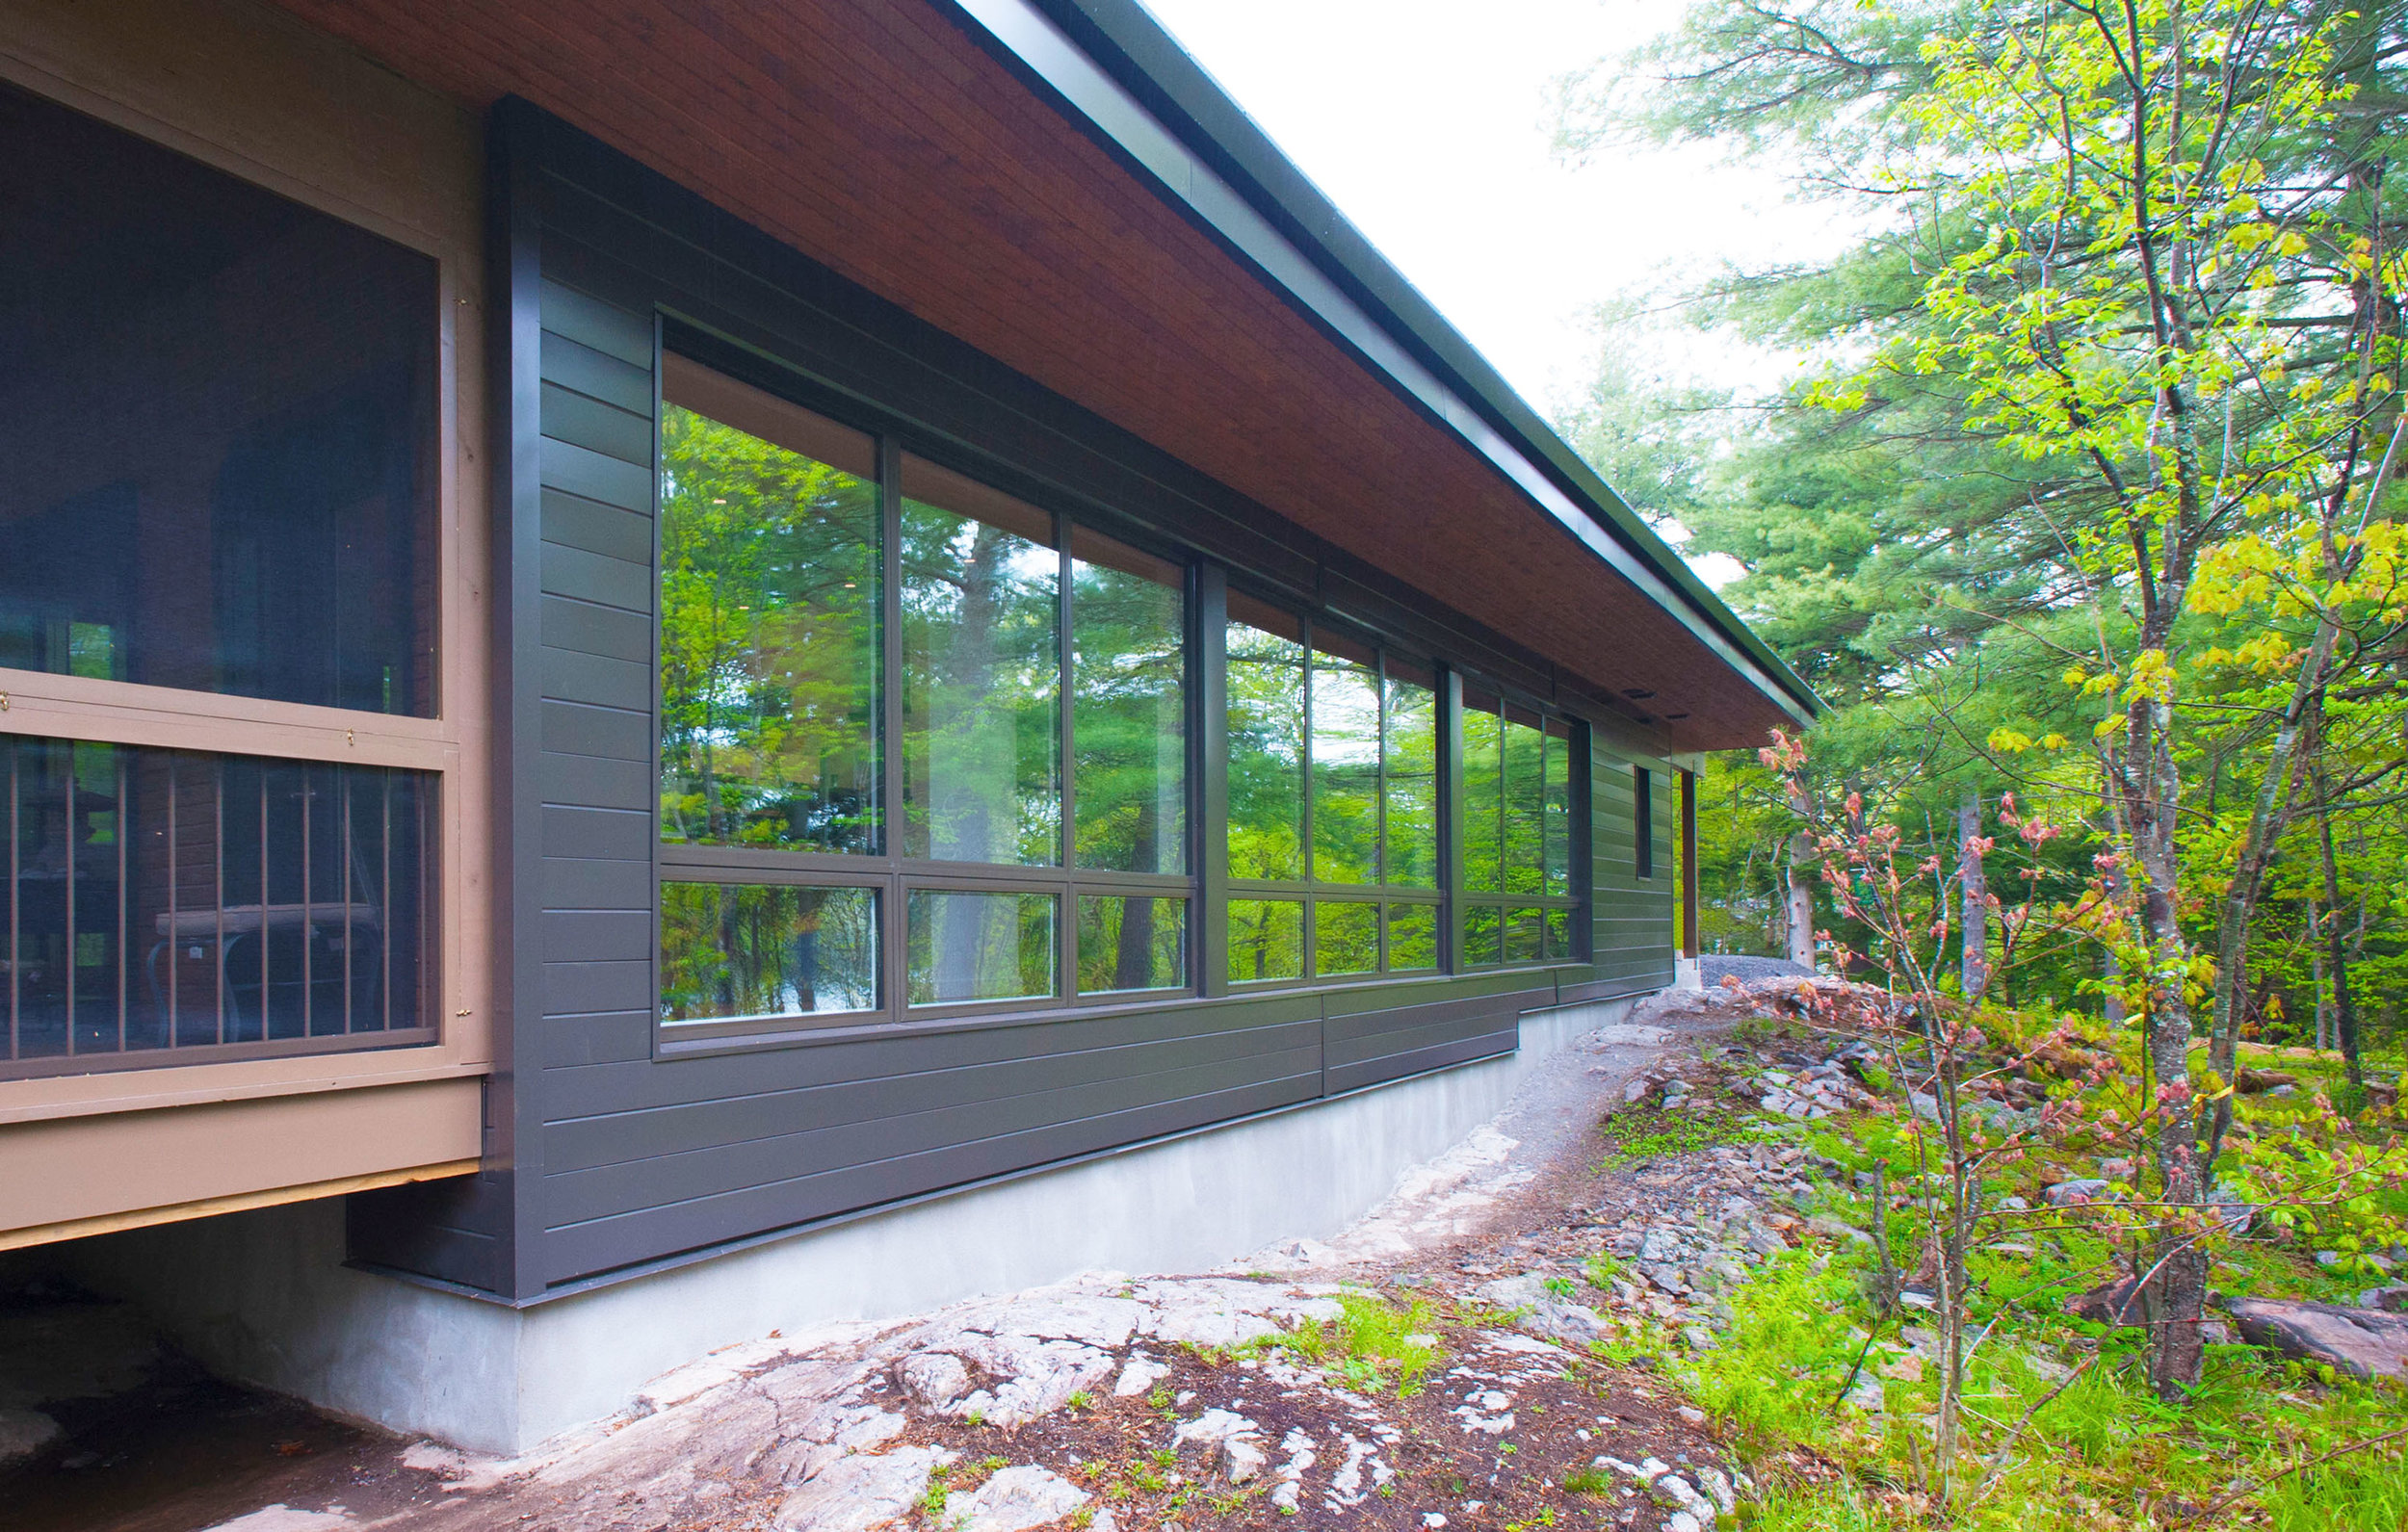 Frontenac Residence - Frontenac, ON. - Credit - Solares Architecture